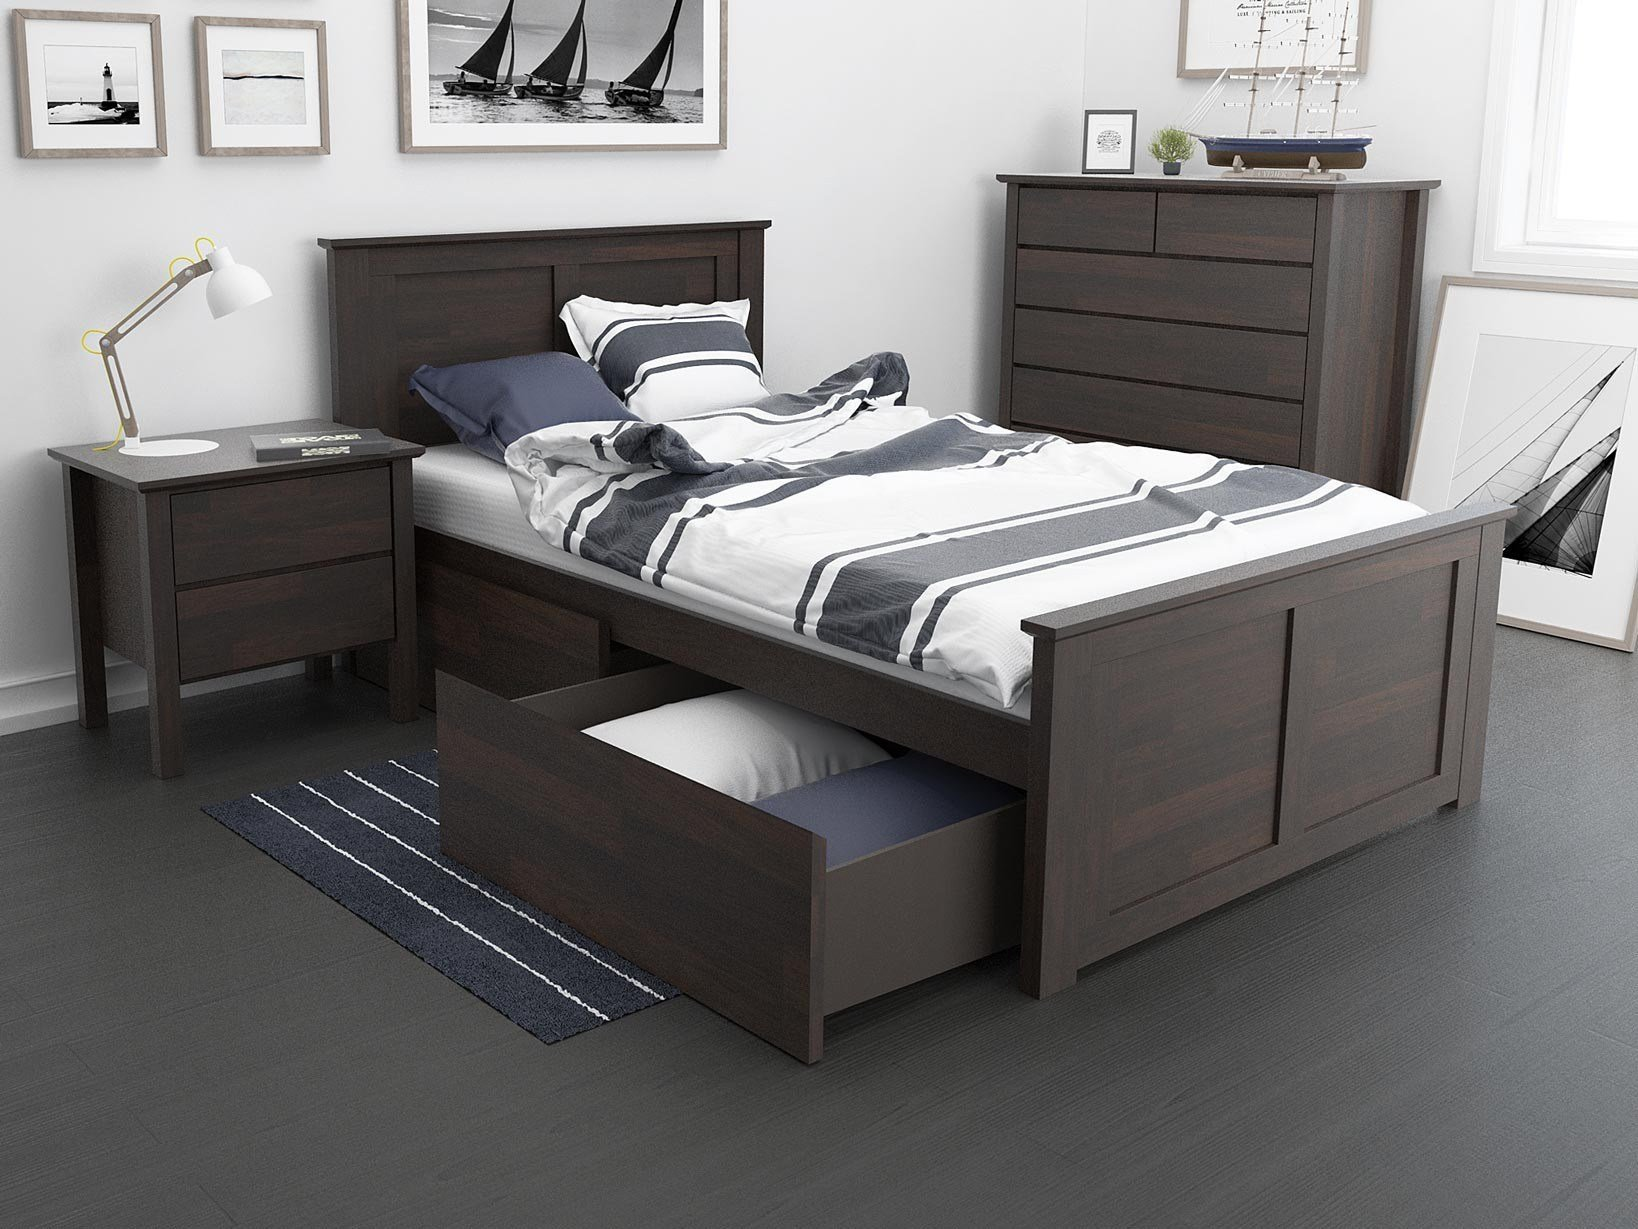 Best King Single Storage Bedroom Suites 50 75 Off Sale With Pictures